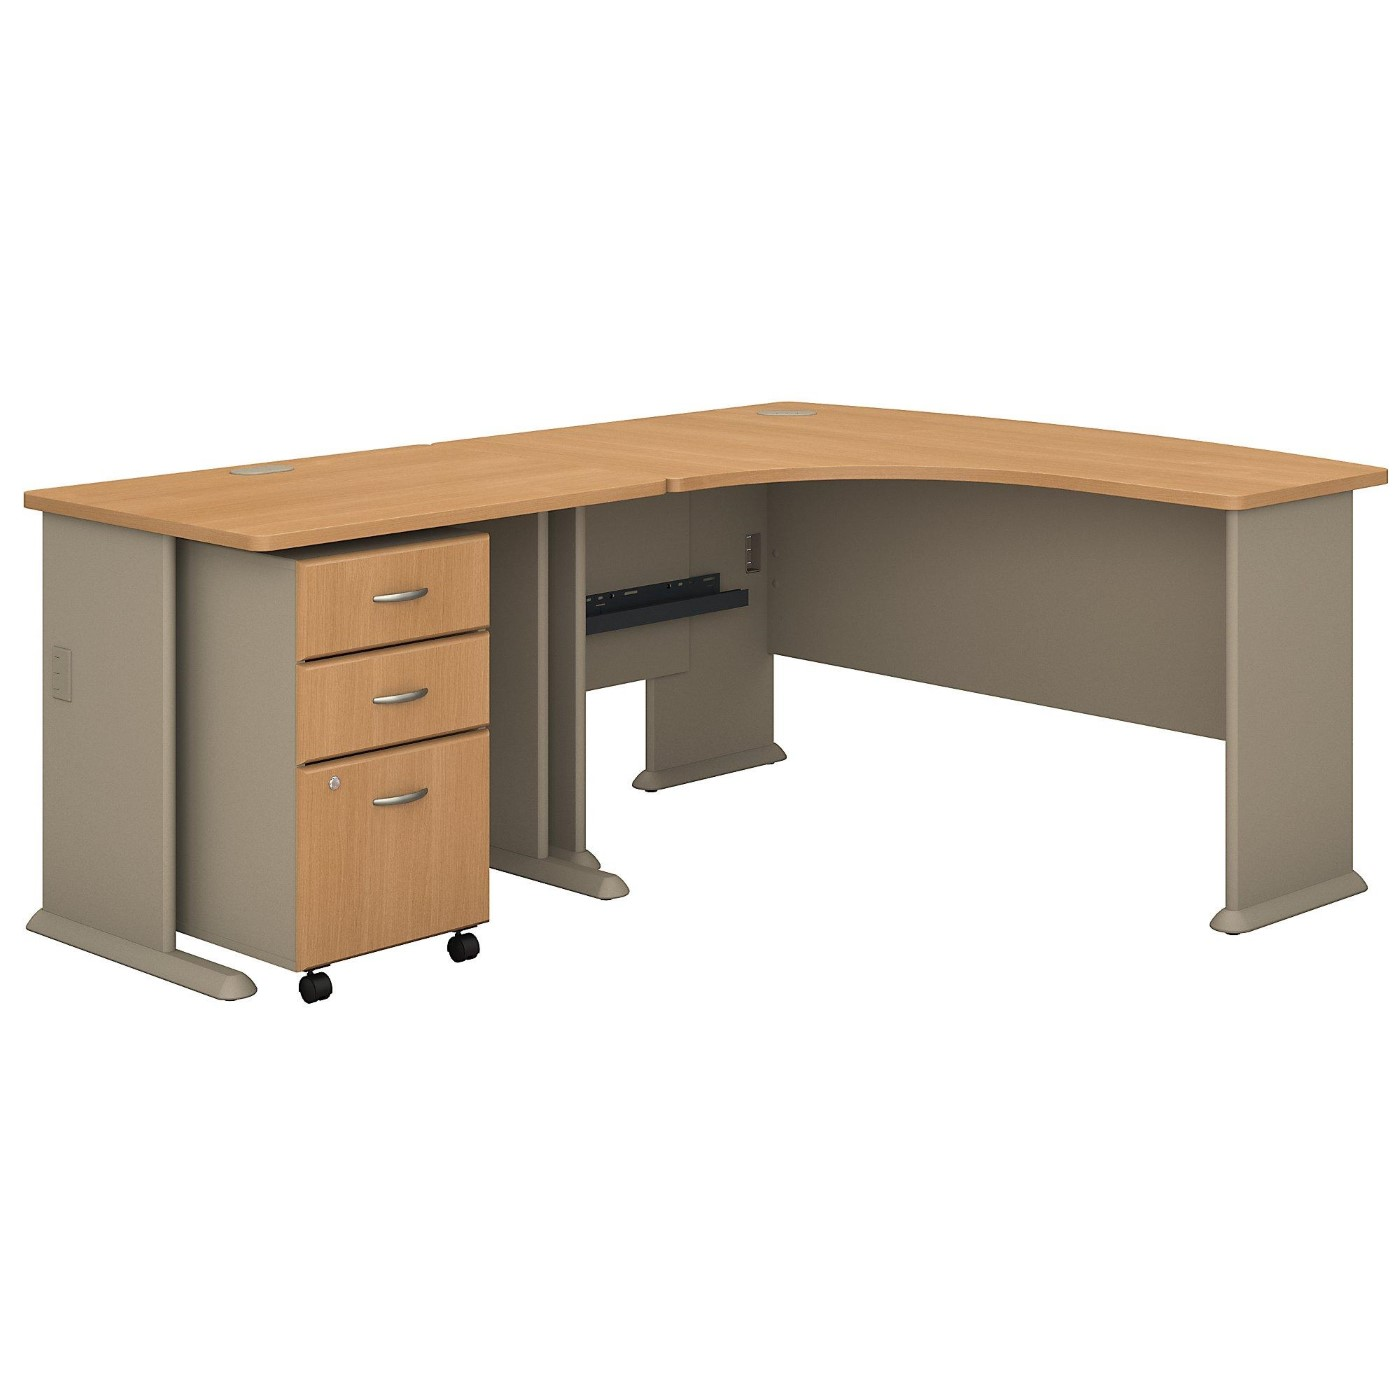 <font color=#c60><b>BUSH BUSINESS FURNITURE SERIES A 60W RIGHT HANDED L SHAPED DESK WITH 36W RETURN AND MOBILE FILE CABINET. FREE SHIPPING</font></b>